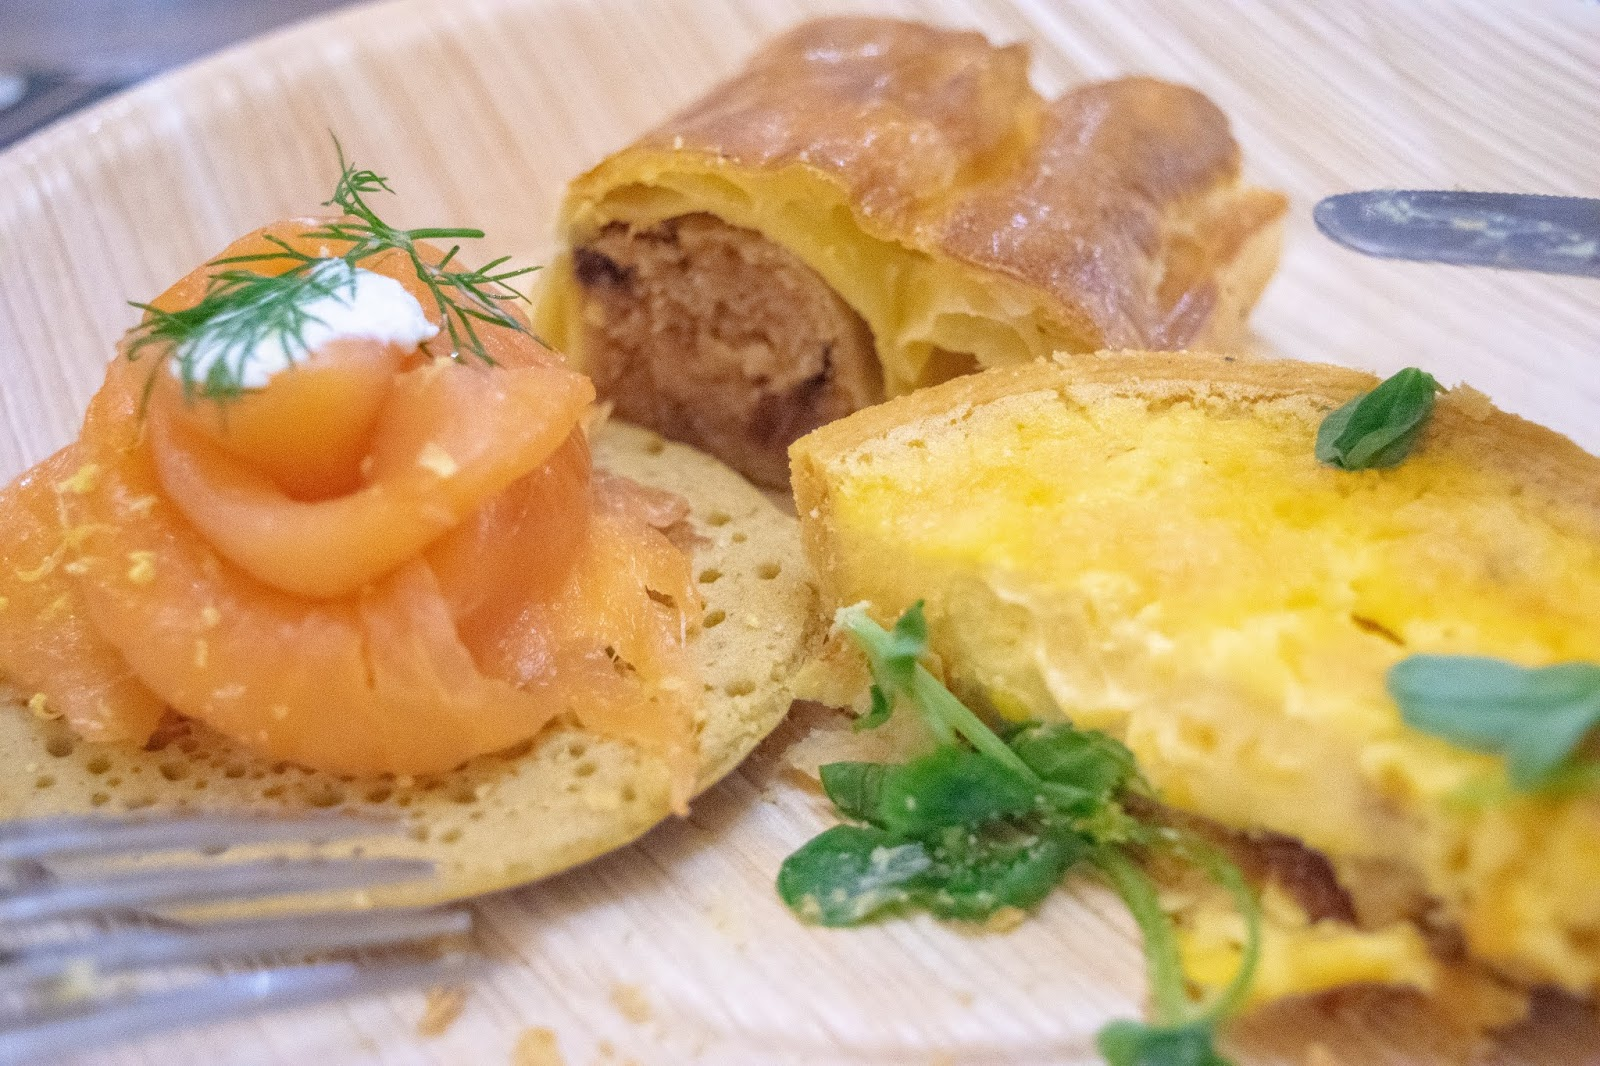 A selection of foods including smoked salmon on a savoury pancake, a cheese tartlet and vegetarian sausage roll.